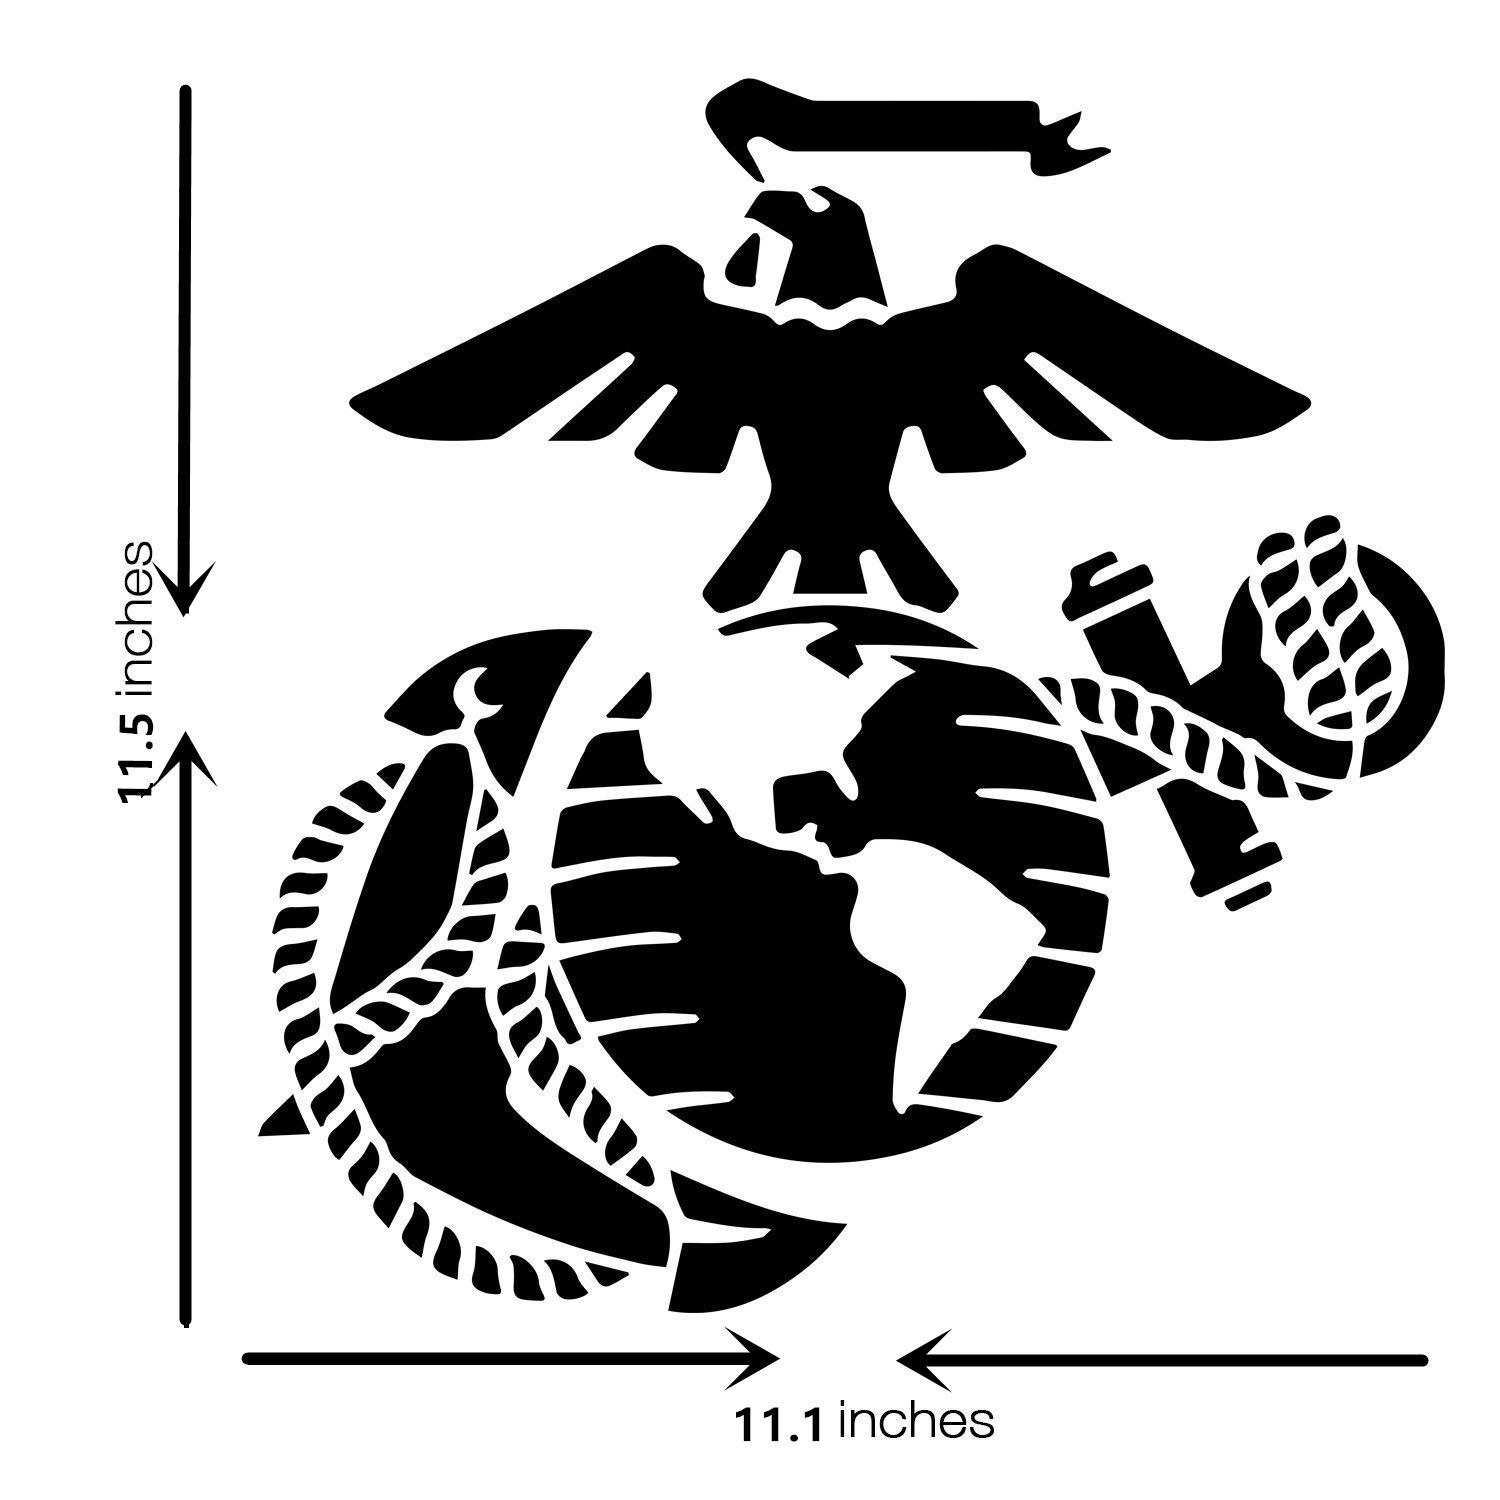 Large U.S Marine Corps Stencil for Painting on Wood, Fabric, Walls, Airbrush + More | Reusable 12 x 14 inch Mylar Template (USMC Military Logo) OBUY